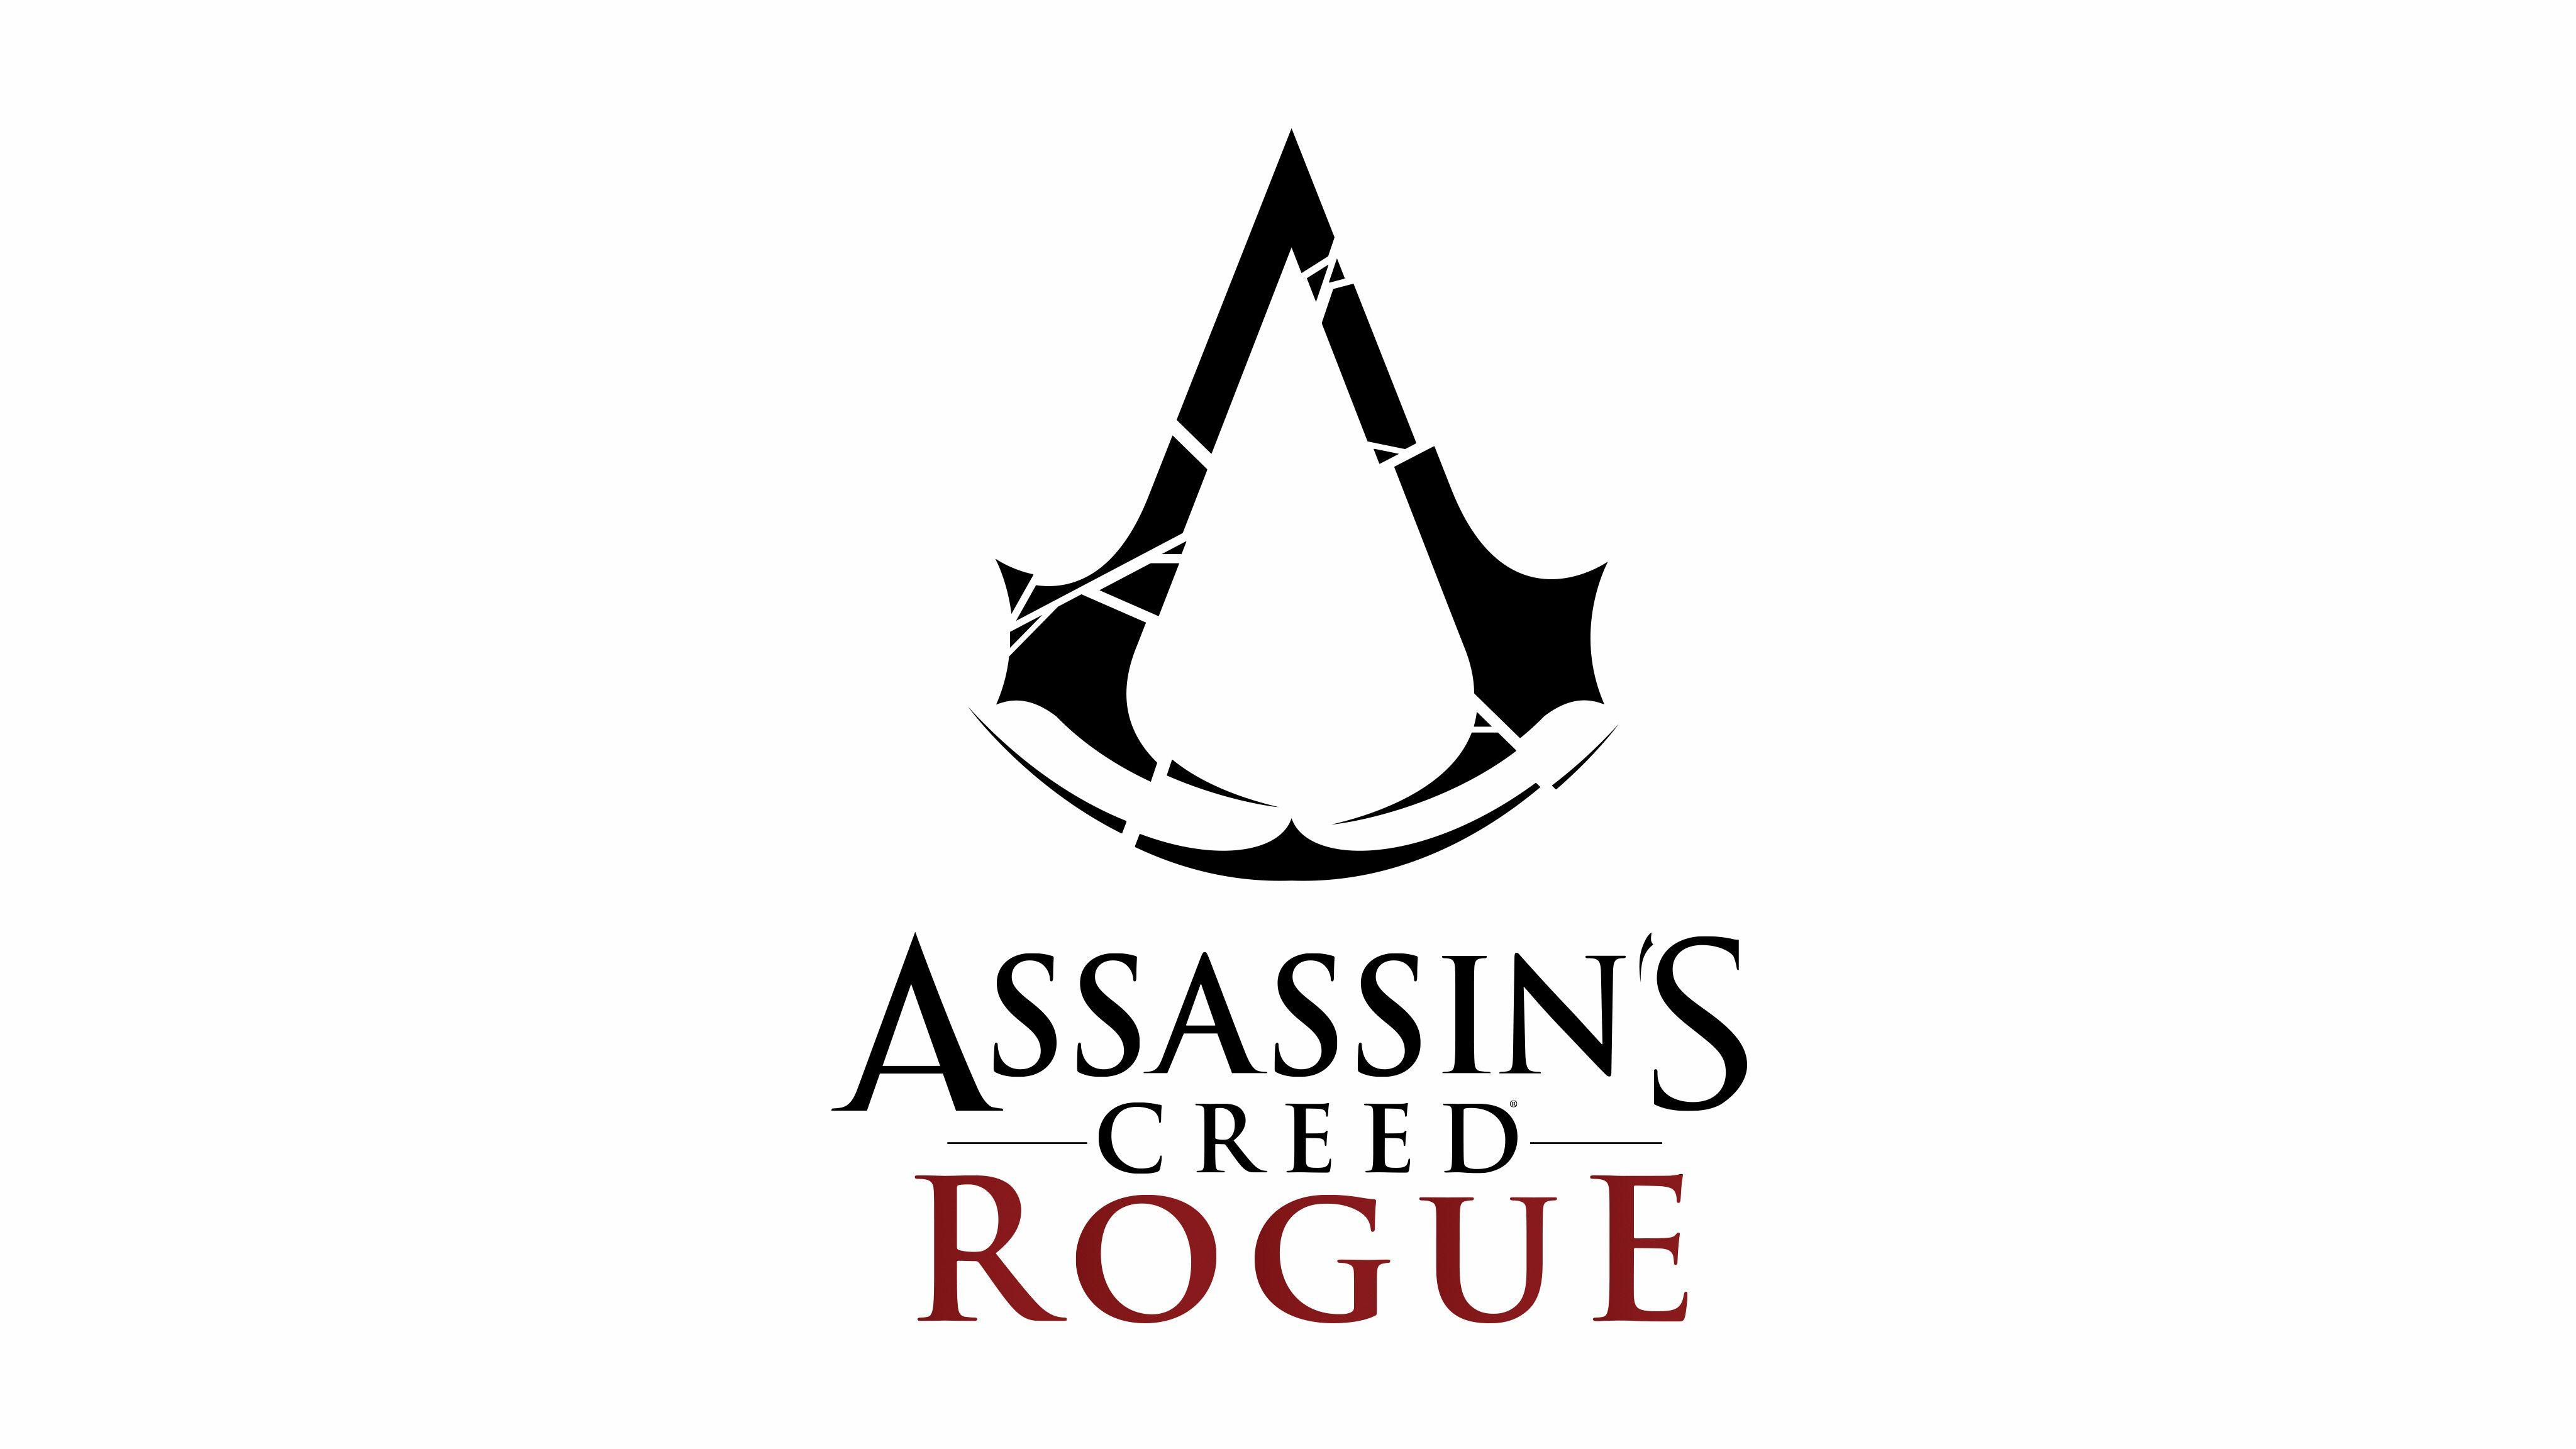 Assassins Creed Rogue Logo High Wallpapers HD 2945